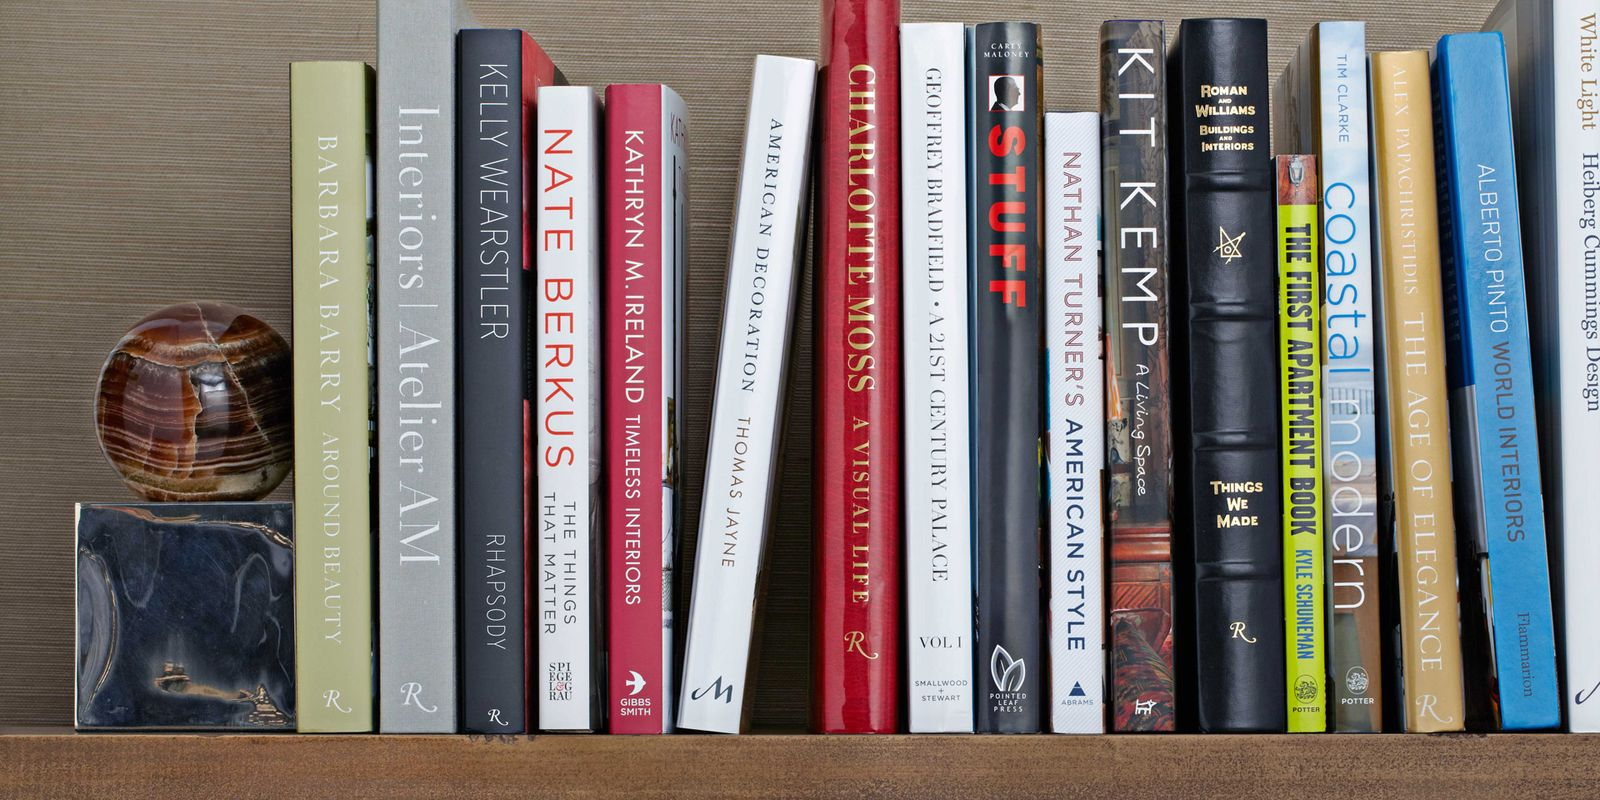 Best new design books of 2013 new interior design books for Home architecture books